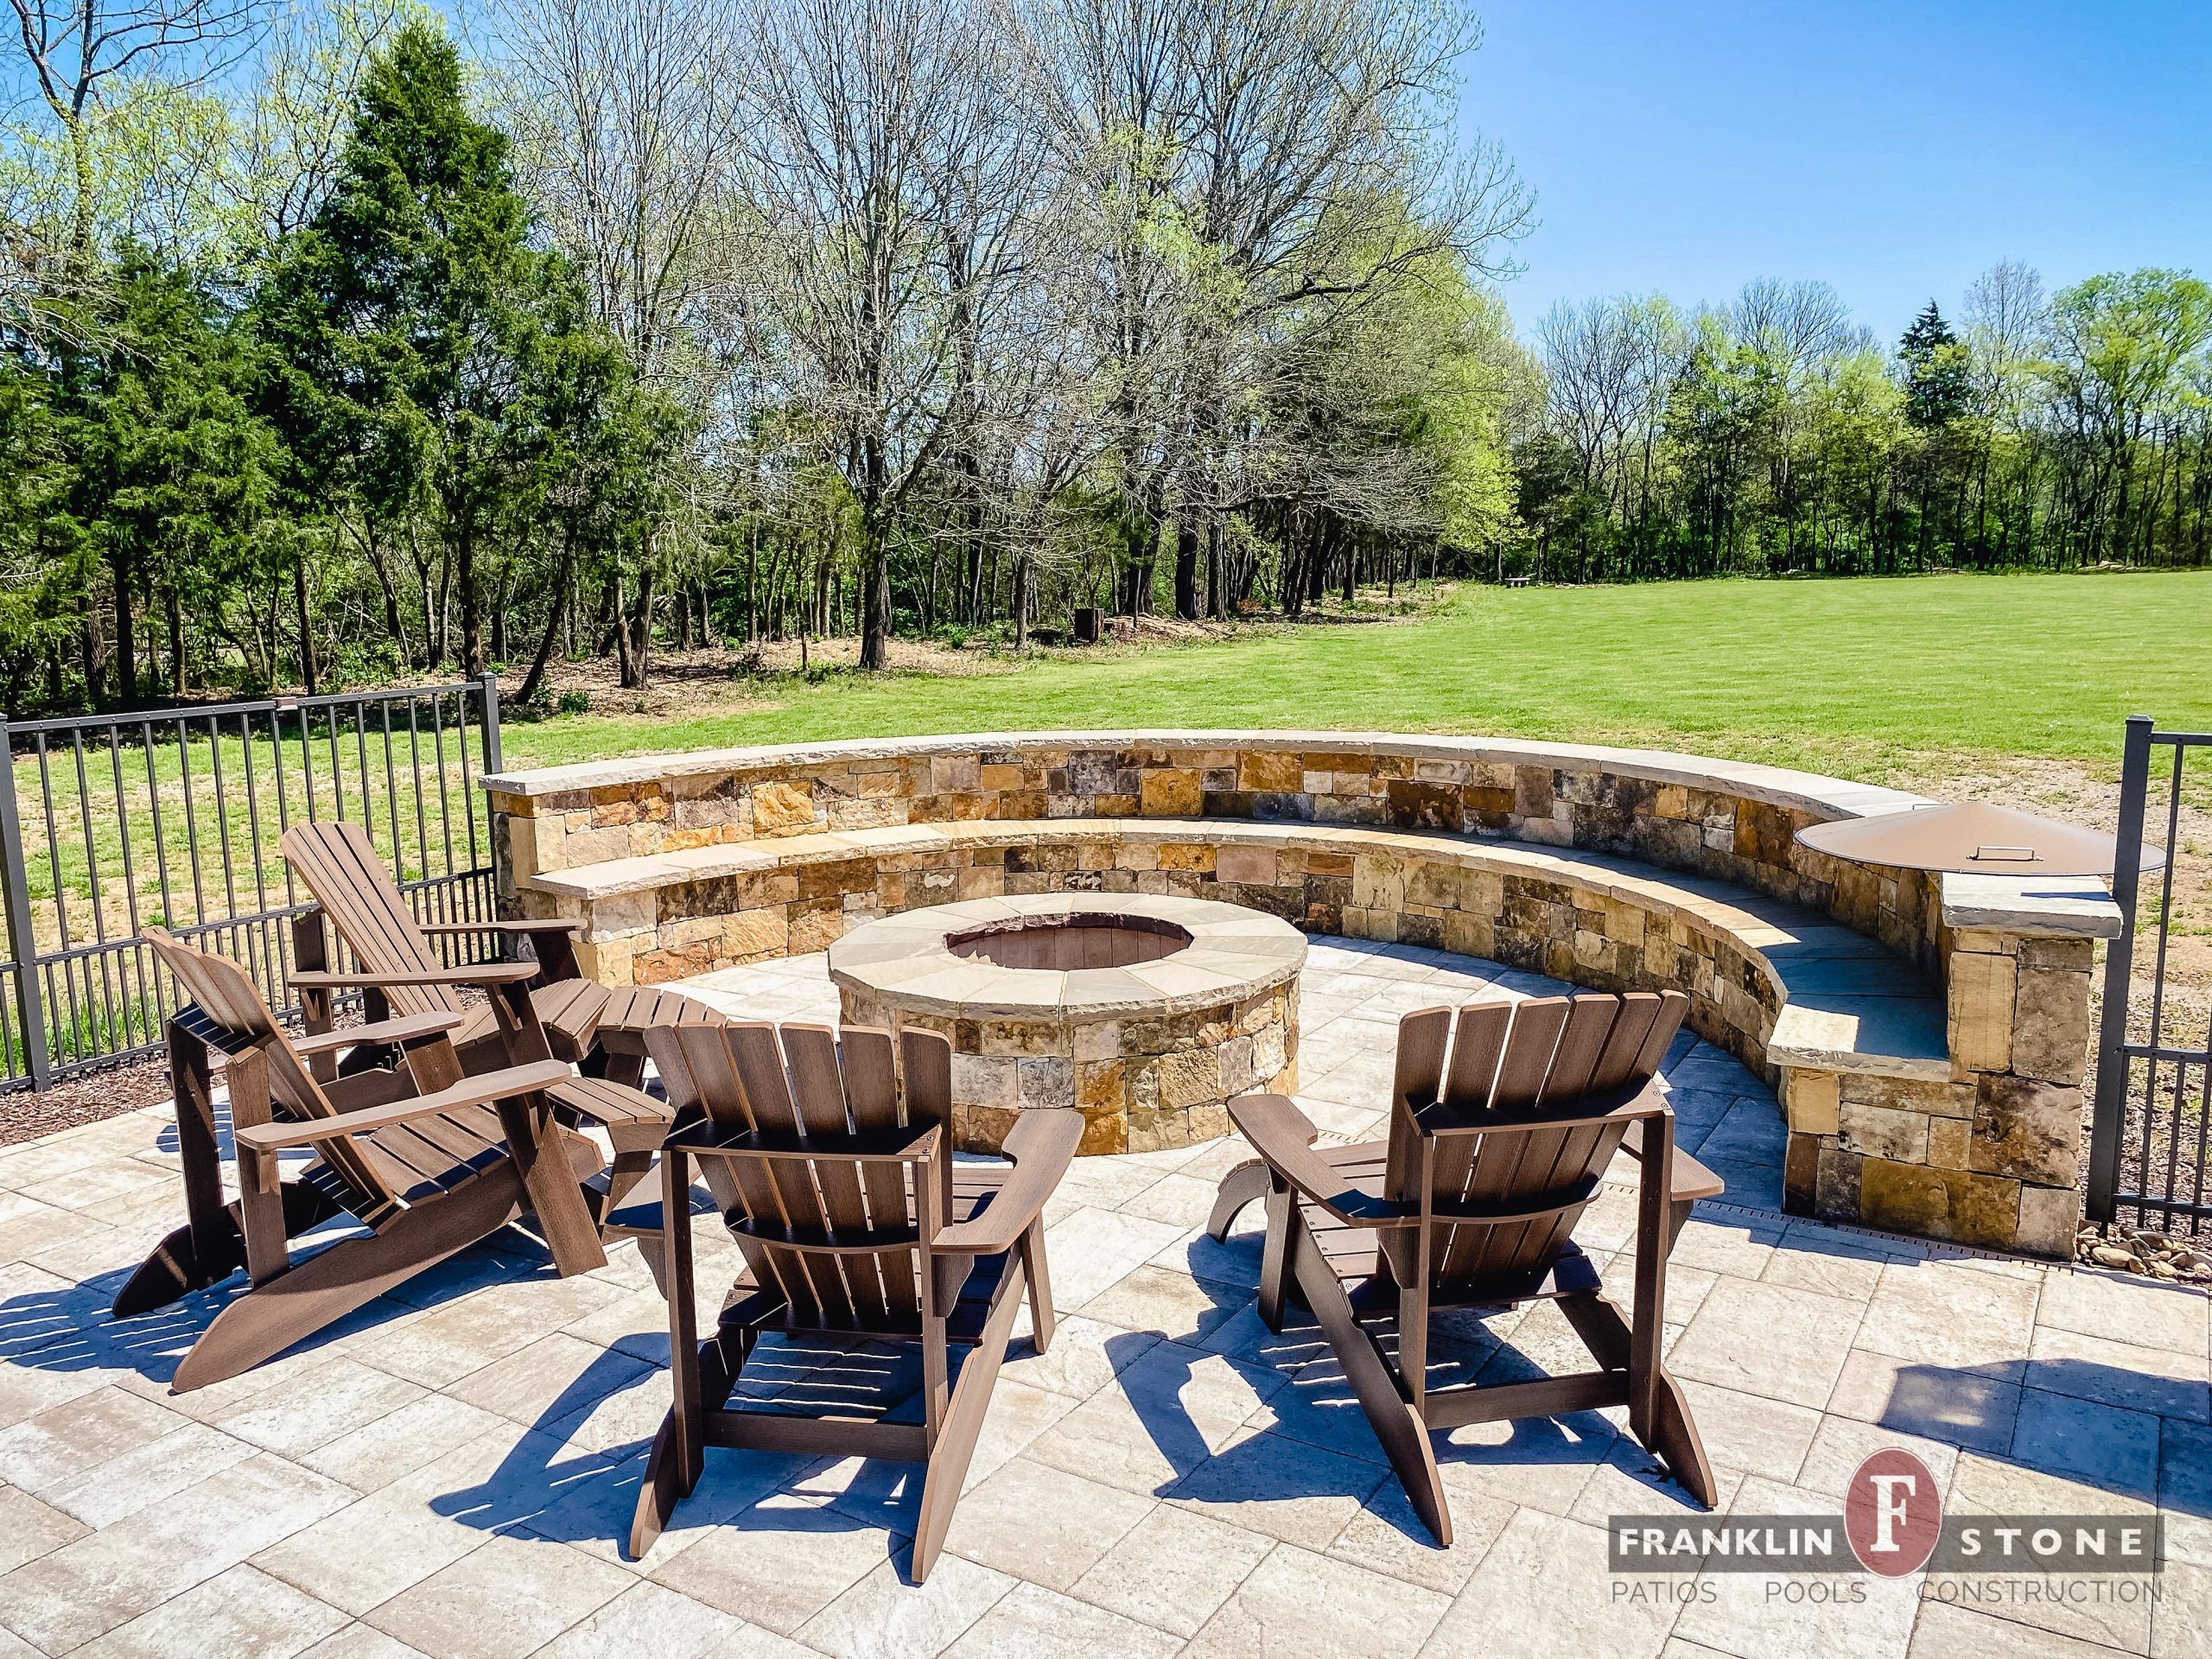 Franklin Stone outdoor firepit and chairs